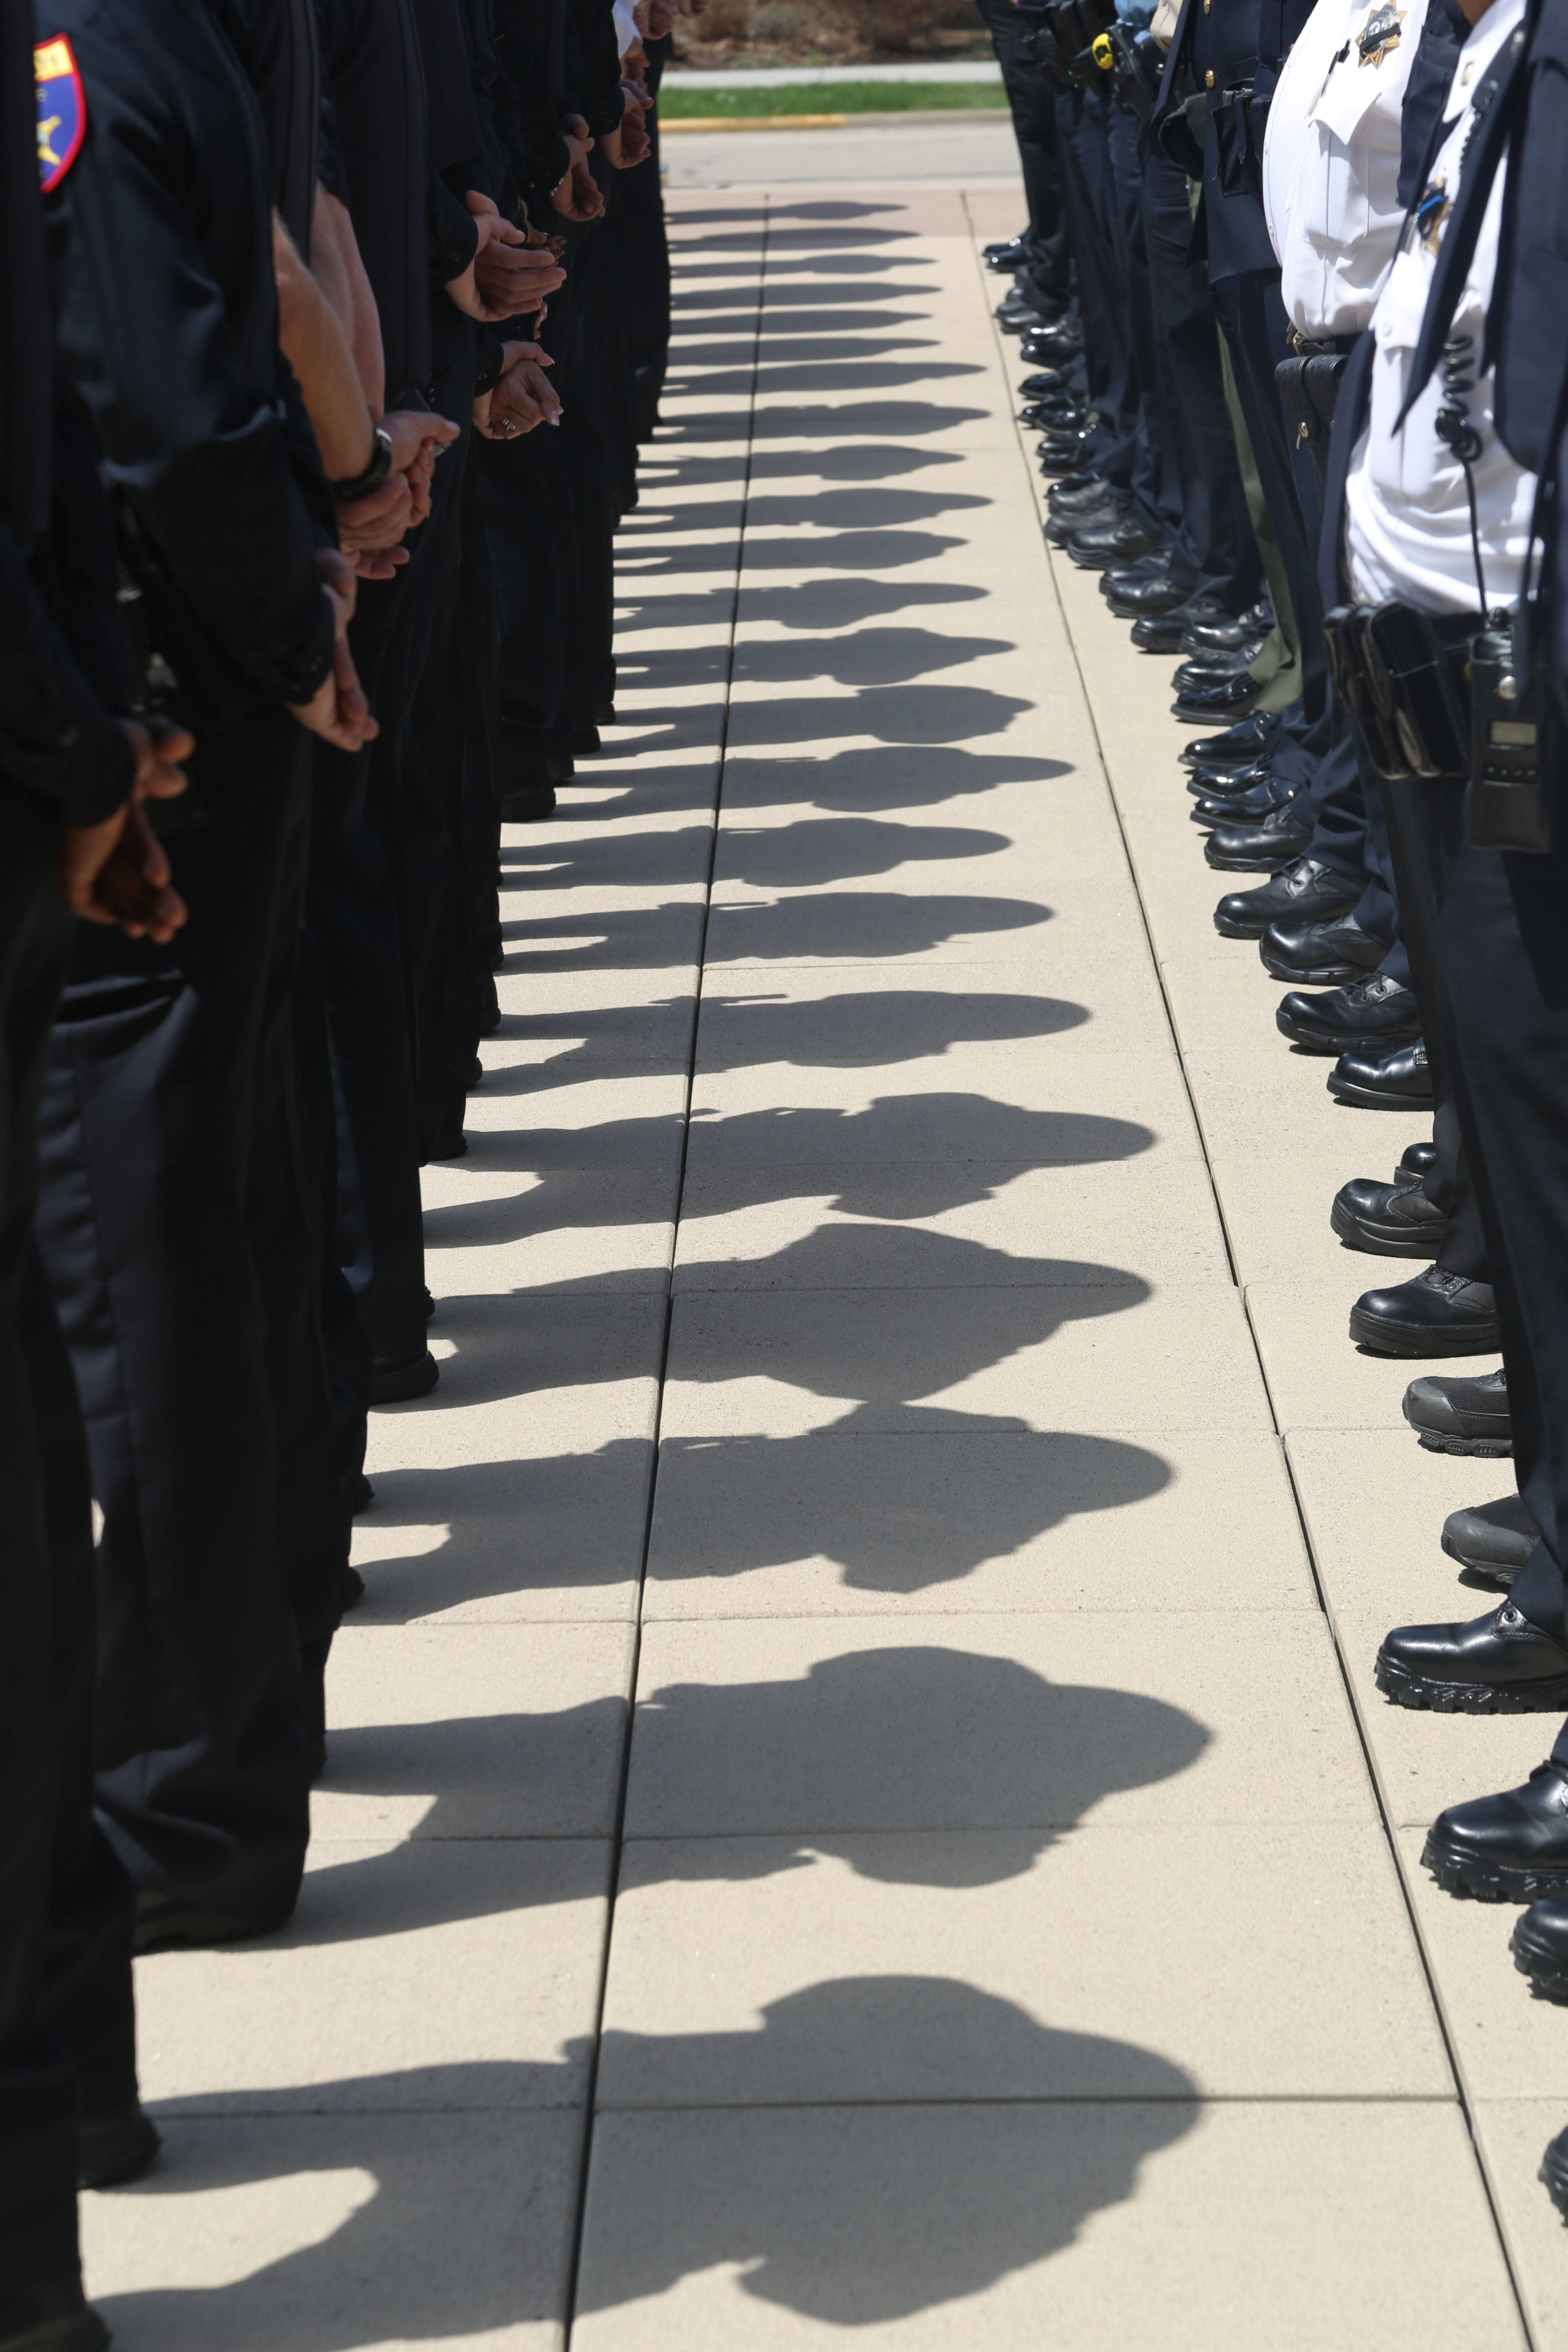 Local police officers stand at attention during the Lake County Police Memorial Friday at Lincoln Memorial Plaza in Waukegan. The ceremony honored 17 officers that have fallen in the past years.